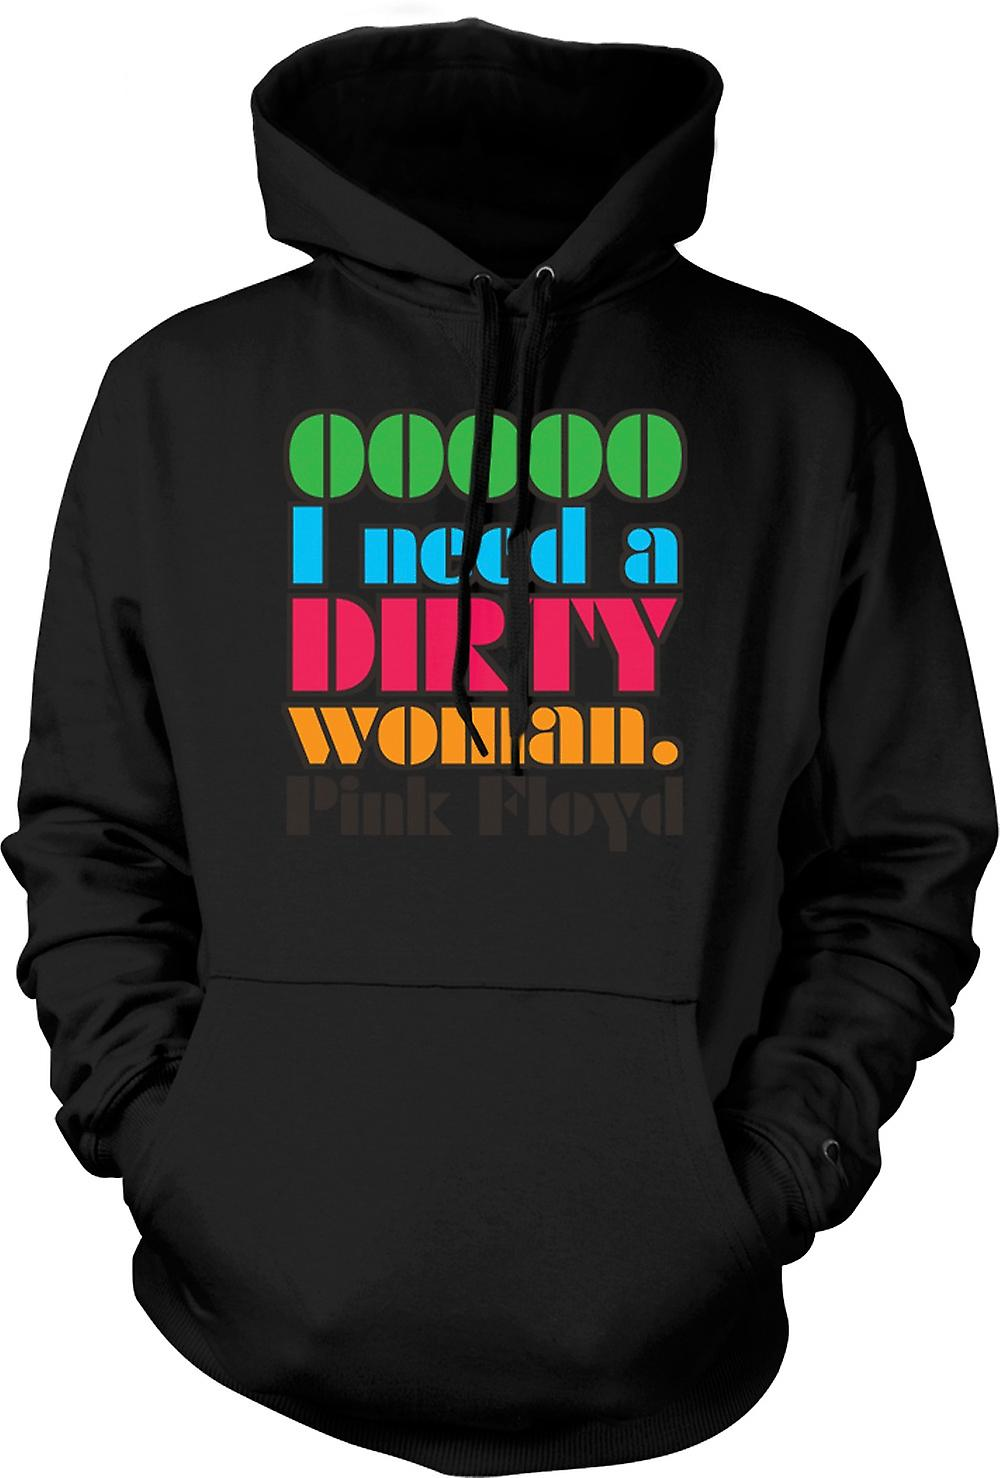 Mens Hoodie - Ooooh I Need A Dirty Woman